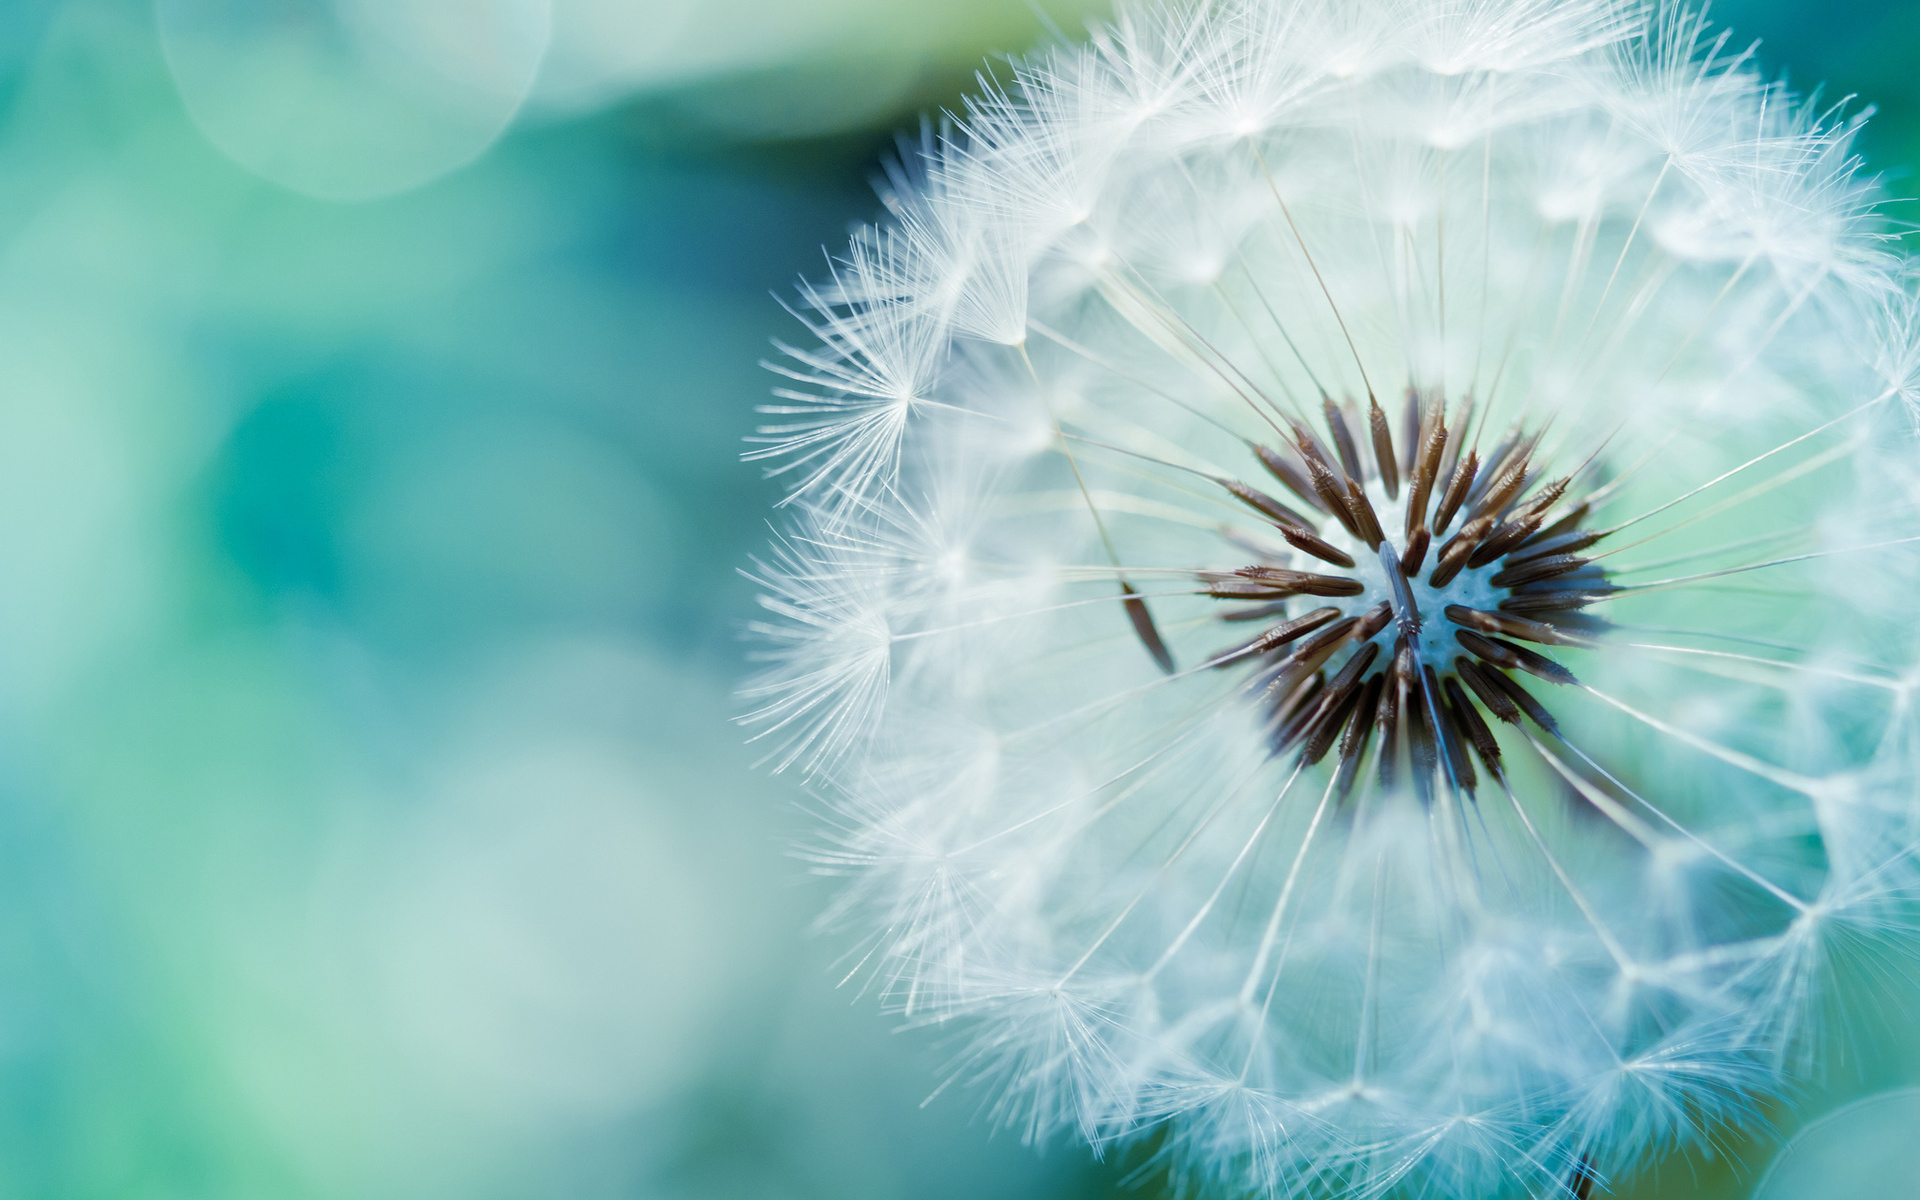 Dandelion Flower 2372.53 Kb